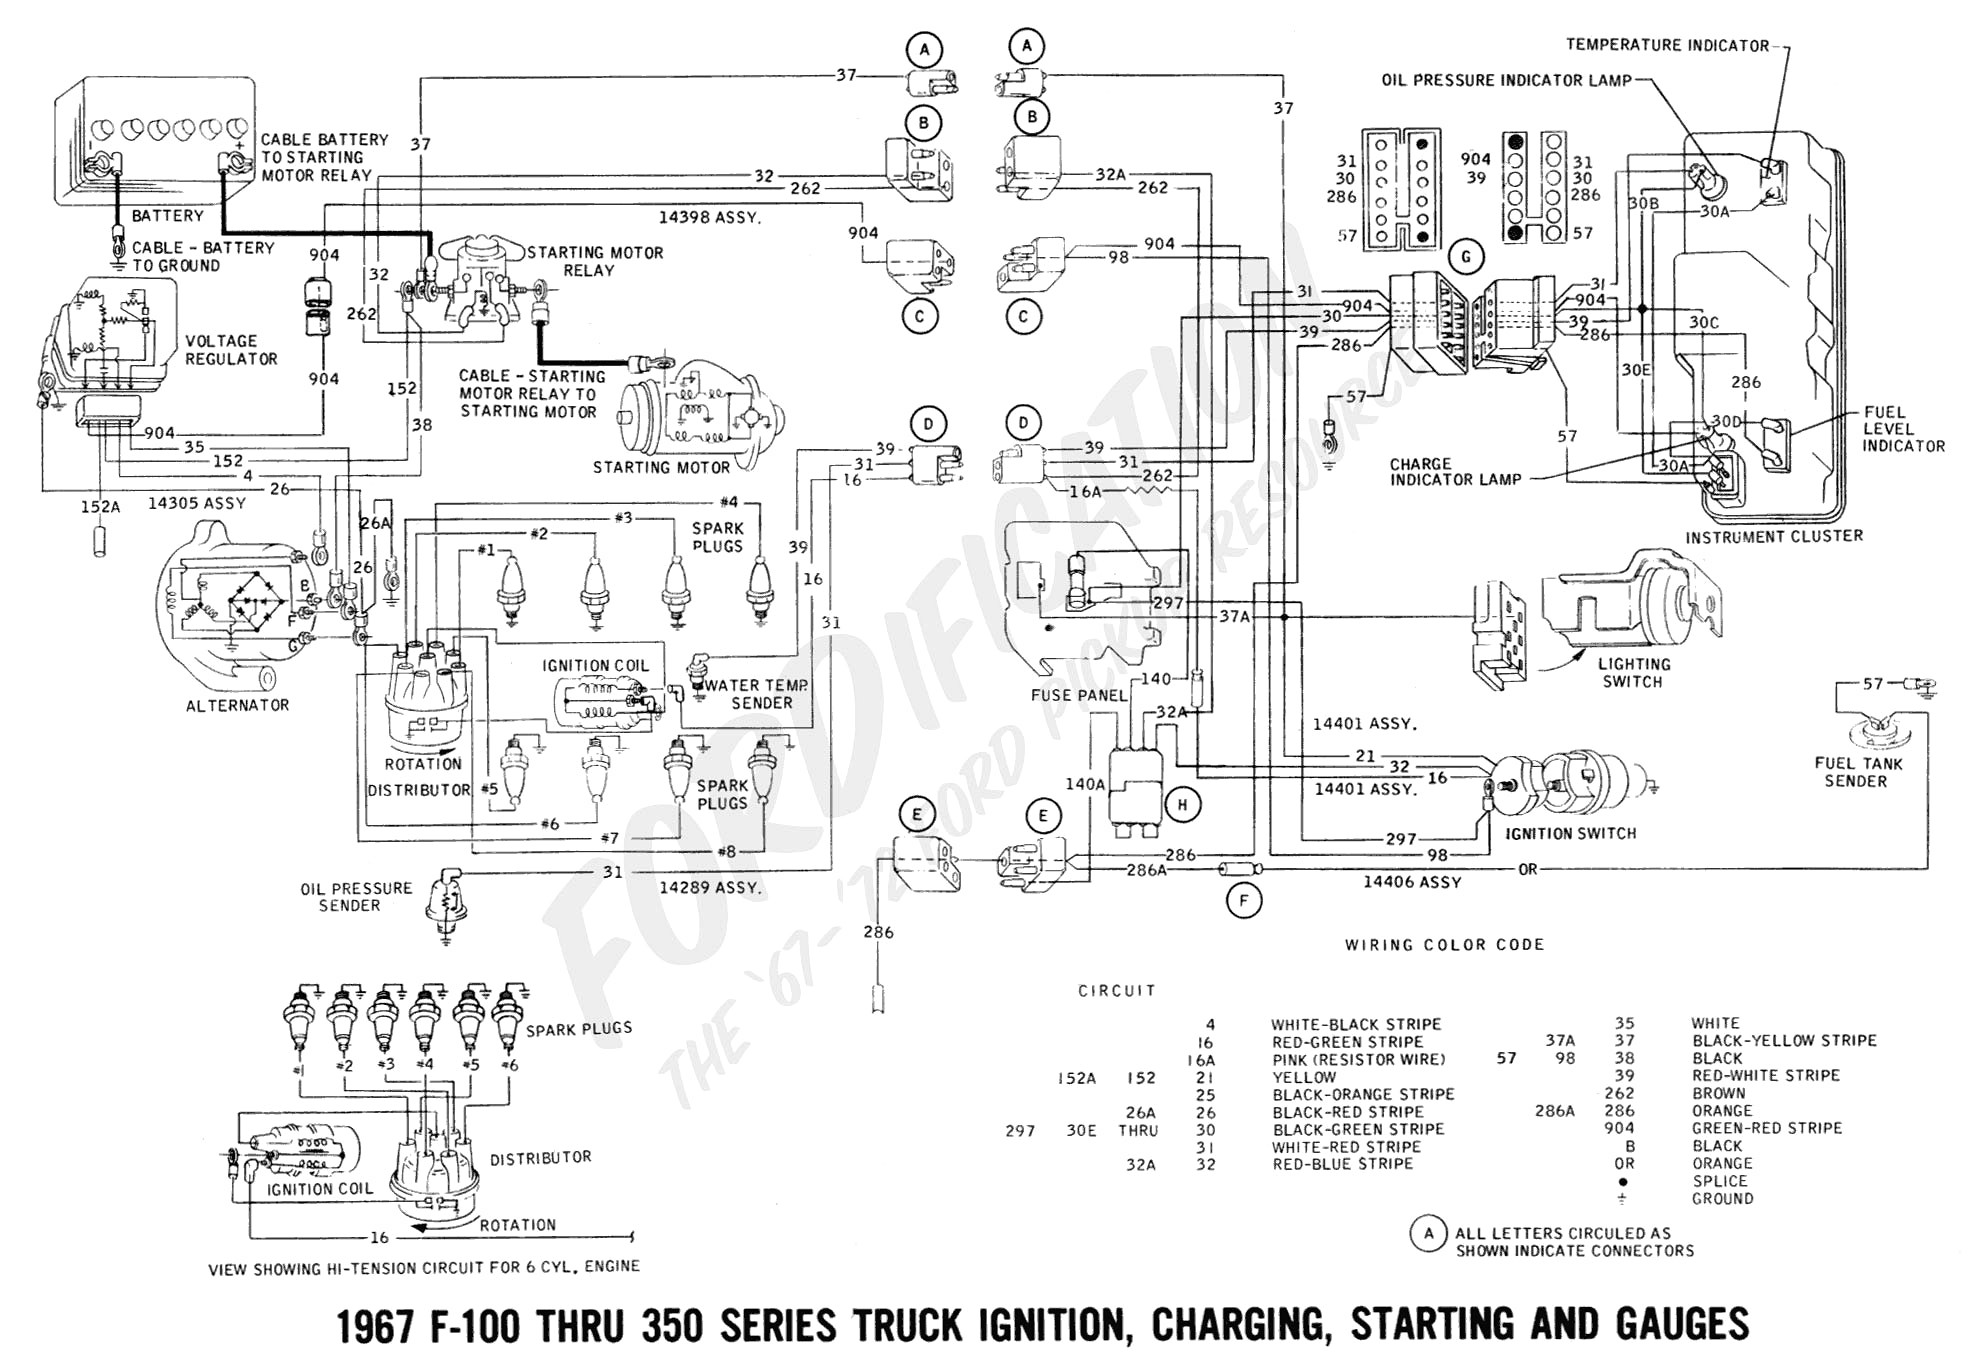 2002 ford Mustang Engine Diagram ford Mustang Gt 98 Fuel Pump Not Working Tried Checking at 1998 Of 2002 ford Mustang Engine Diagram